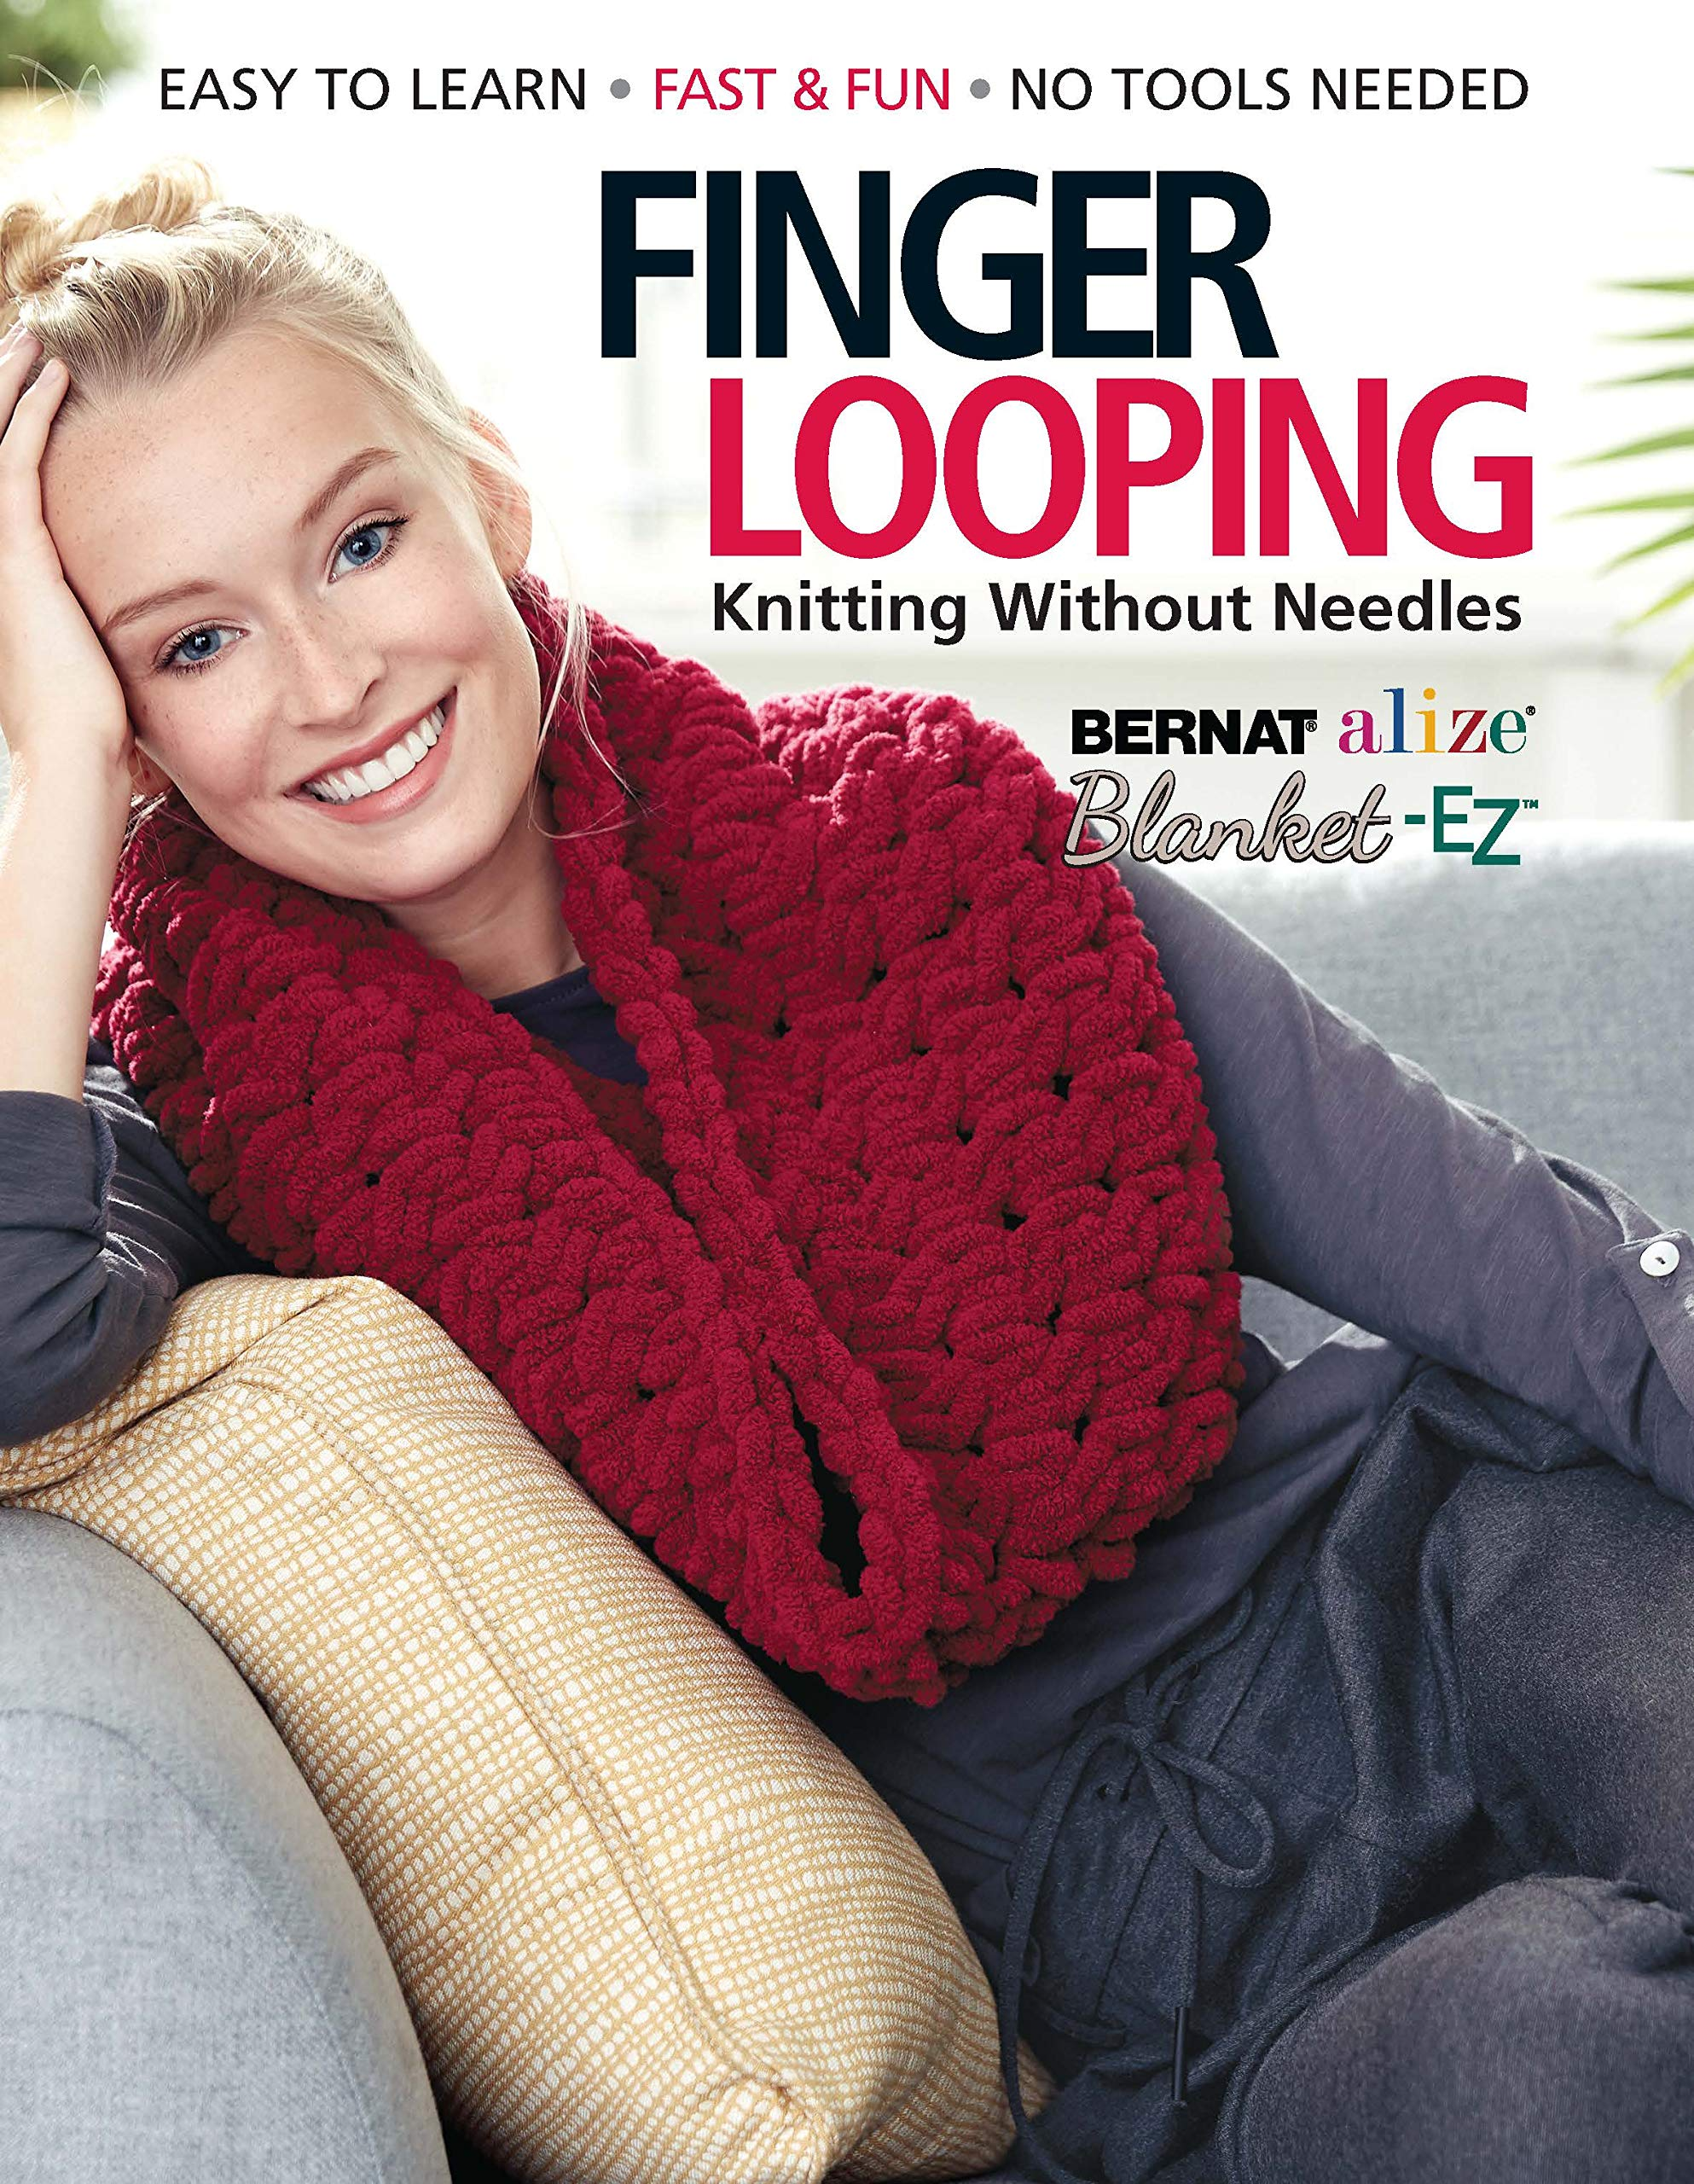 Finger Looping Knitting Without Needles product image